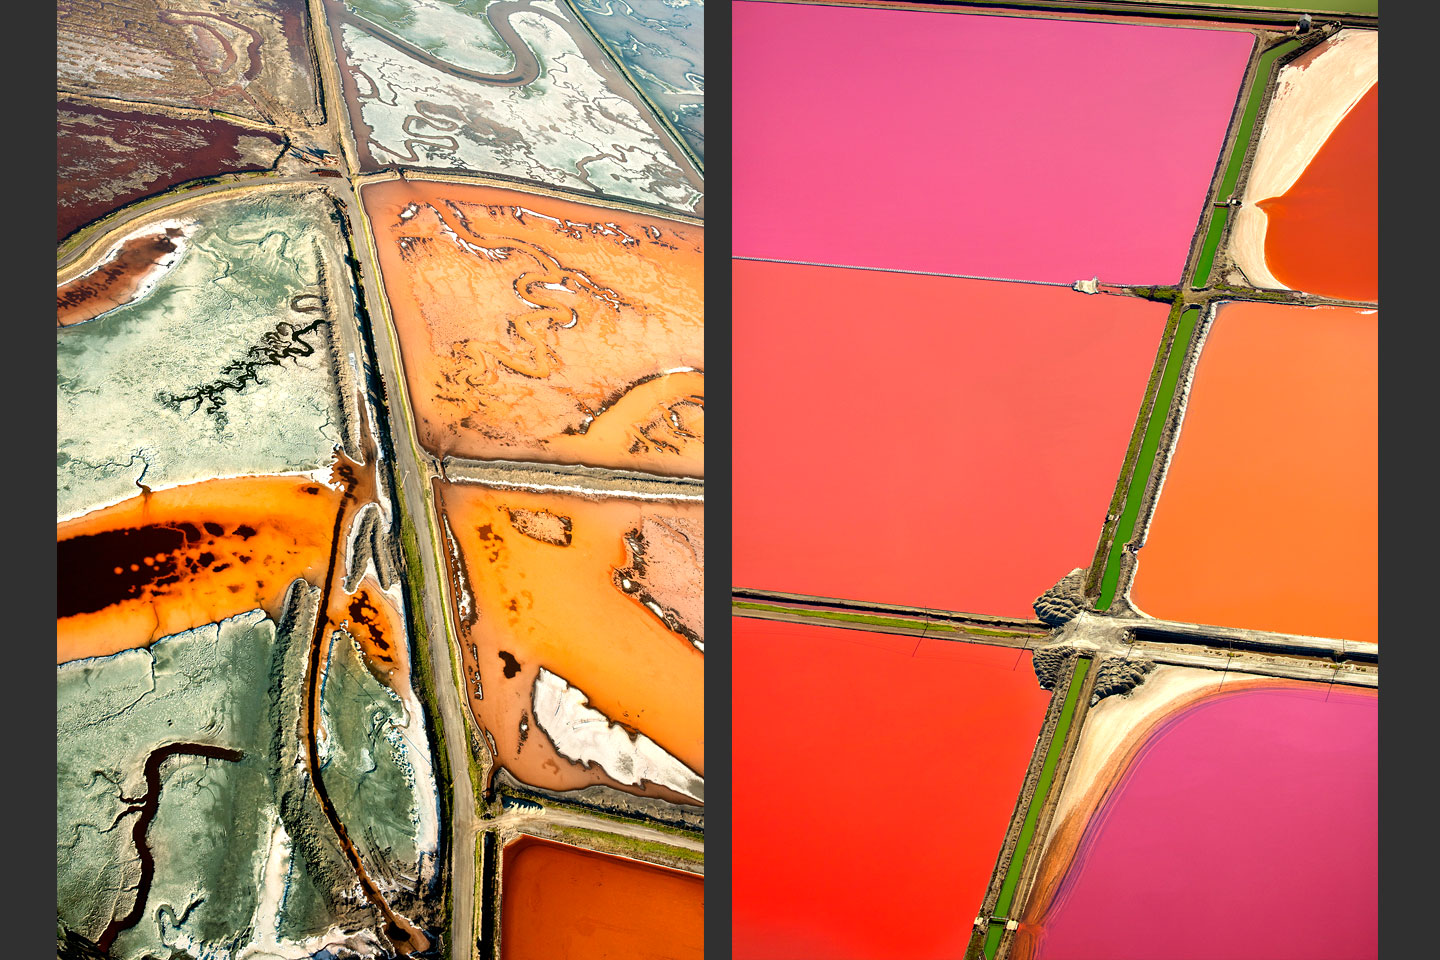 Salt Ponds: The Land in Transition